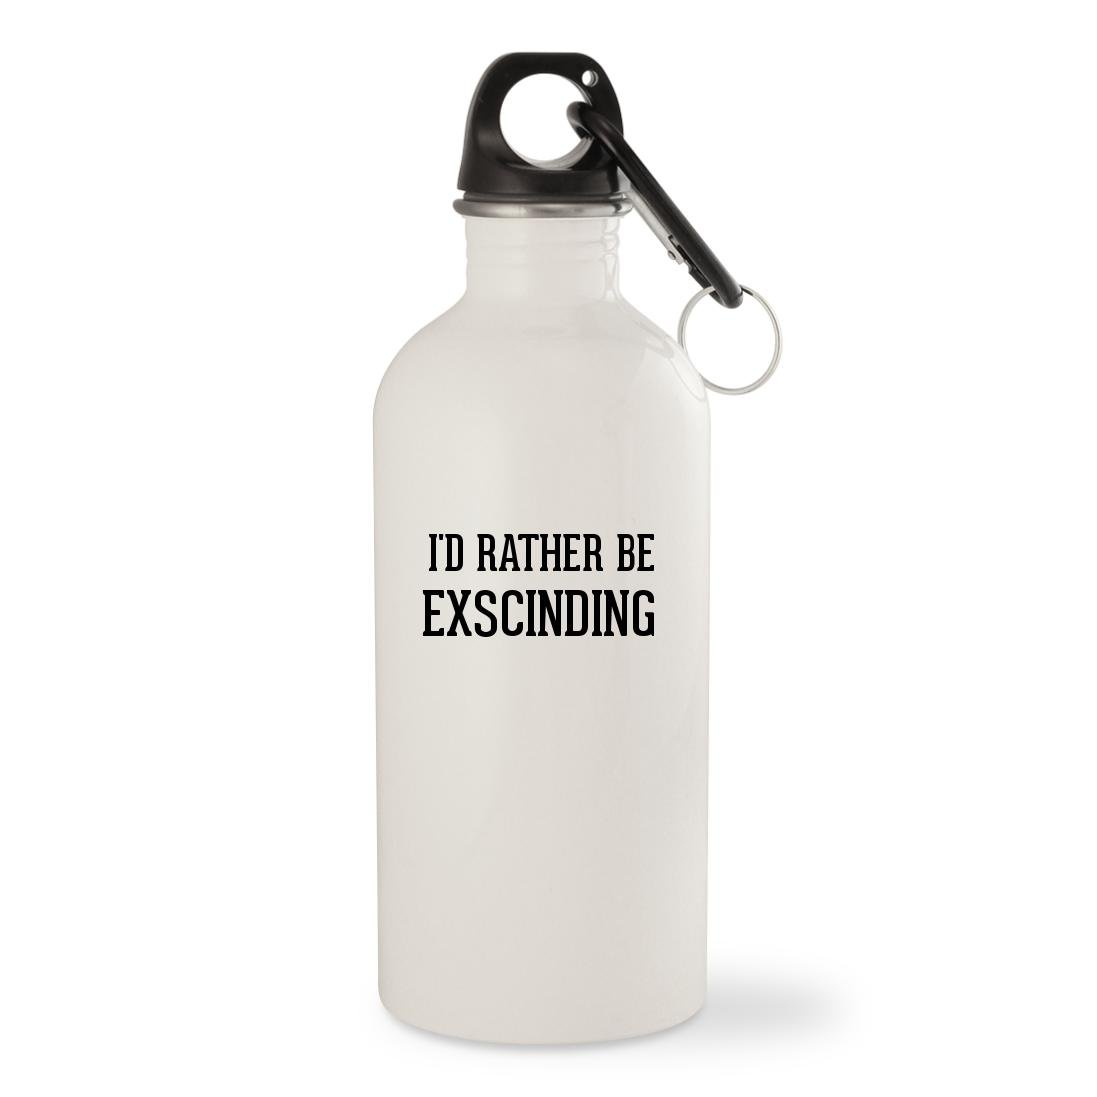 I'd Rather Be EXSCINDING - White 20oz Stainless Steel Water Bottle with Carabiner